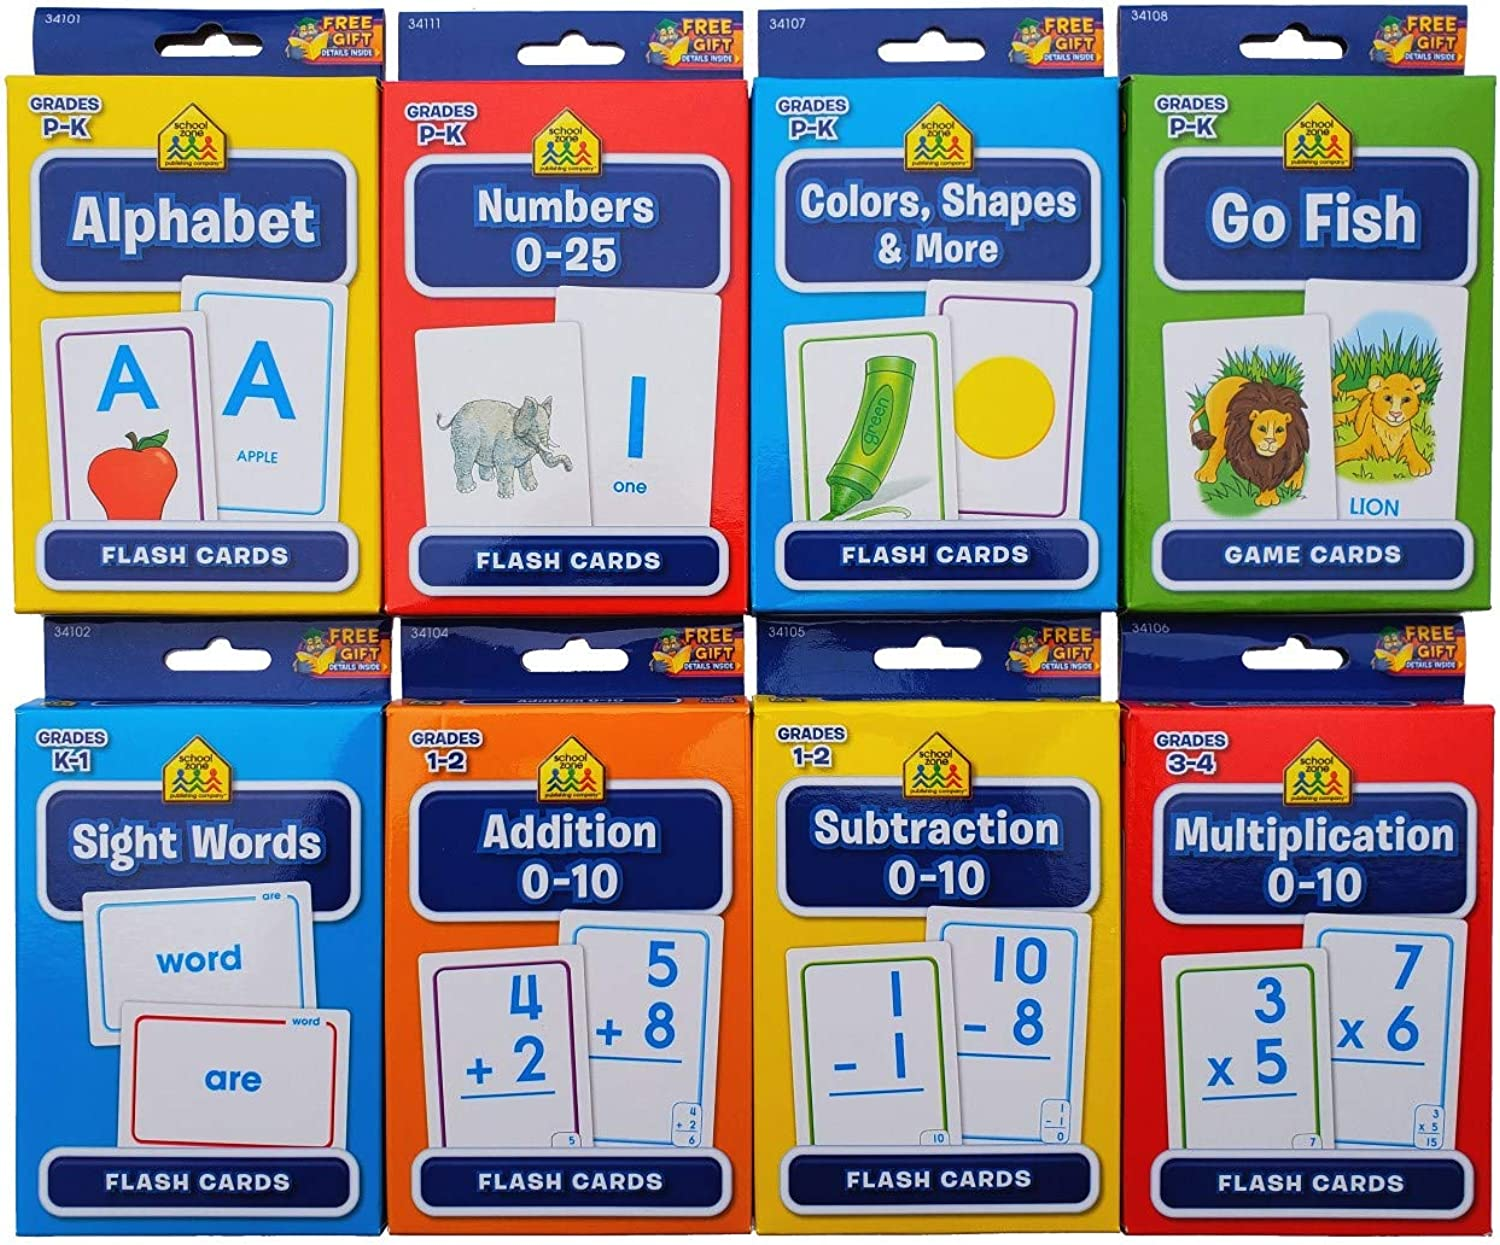 School Zone Flash Cards 8Pack (Alphabet, Numbers 025, colors and Shapes, Sight Words, Addition 010, Subtraction 010, Multiplication 010, Go Fish)